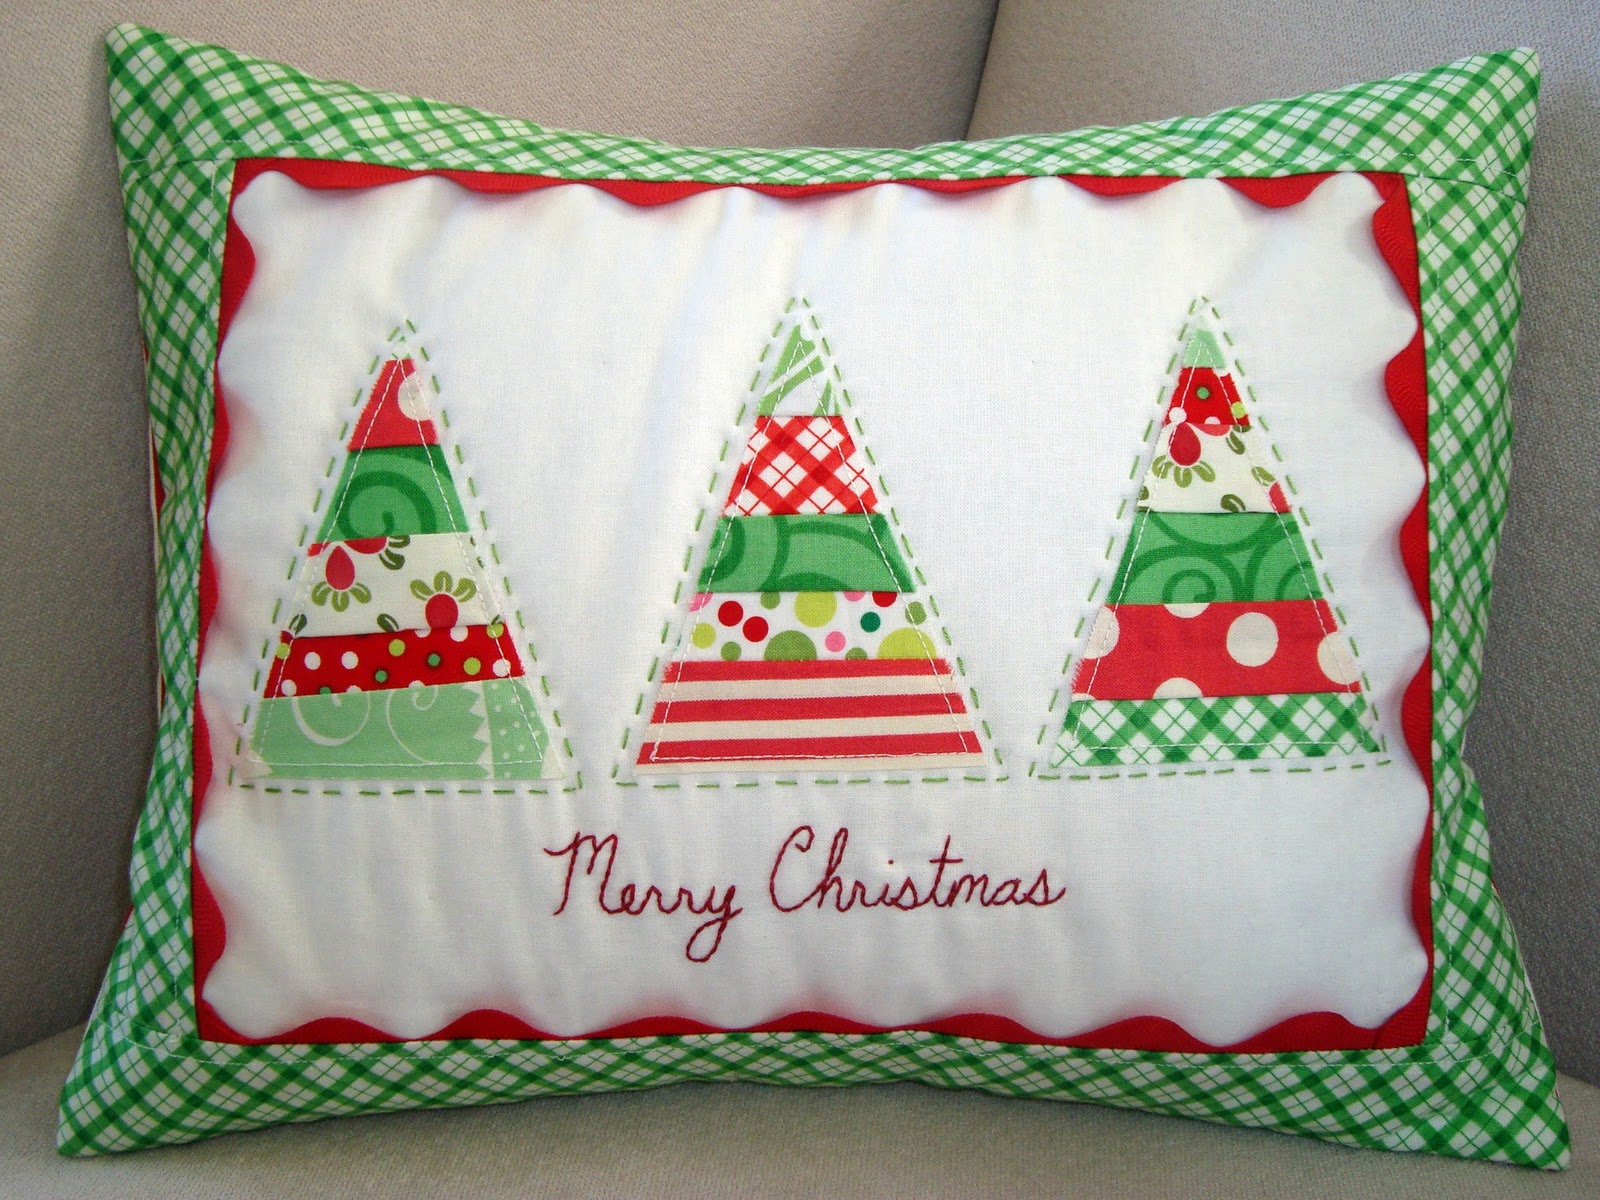 Easy diy christmas gifts ideas 2014 Homemade christmas gifts